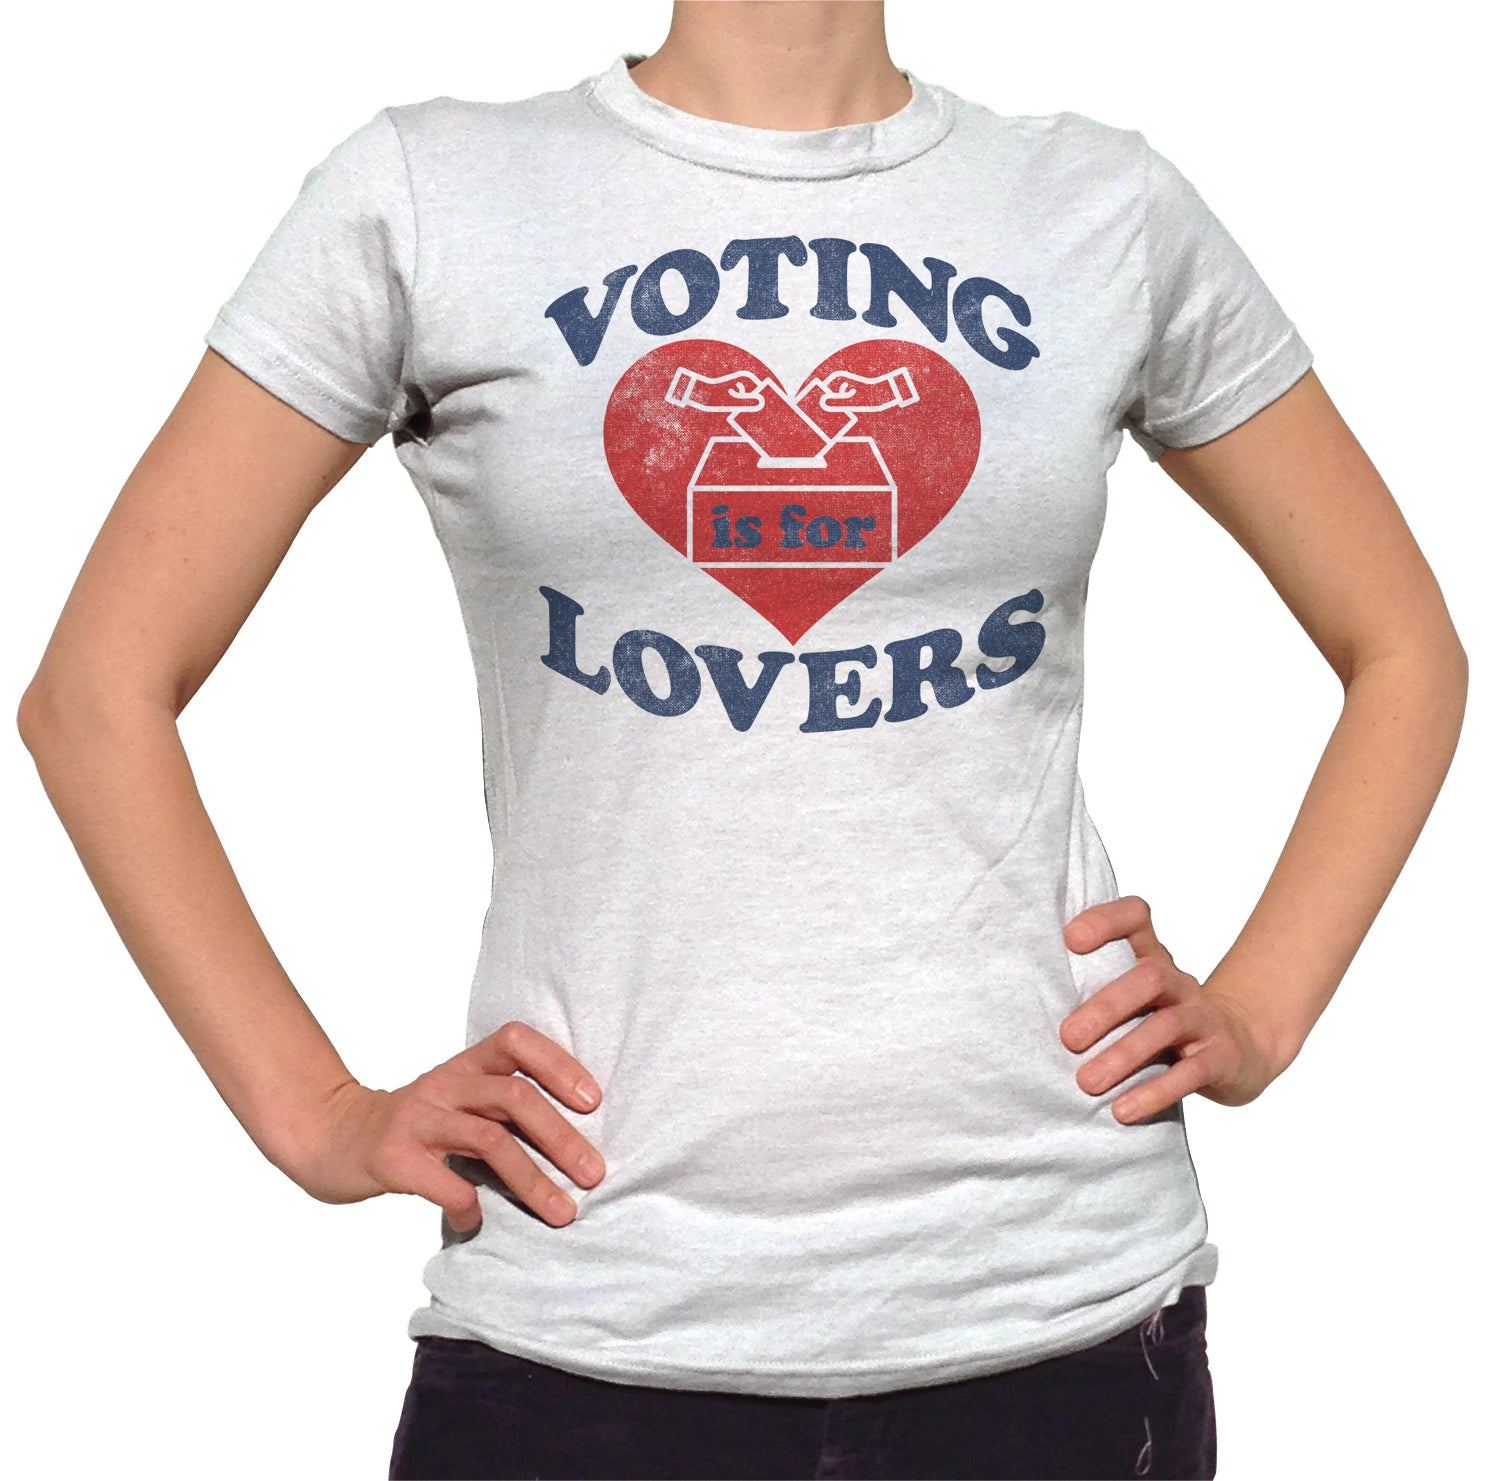 Women's Voting Is For Lovers T-Shirt